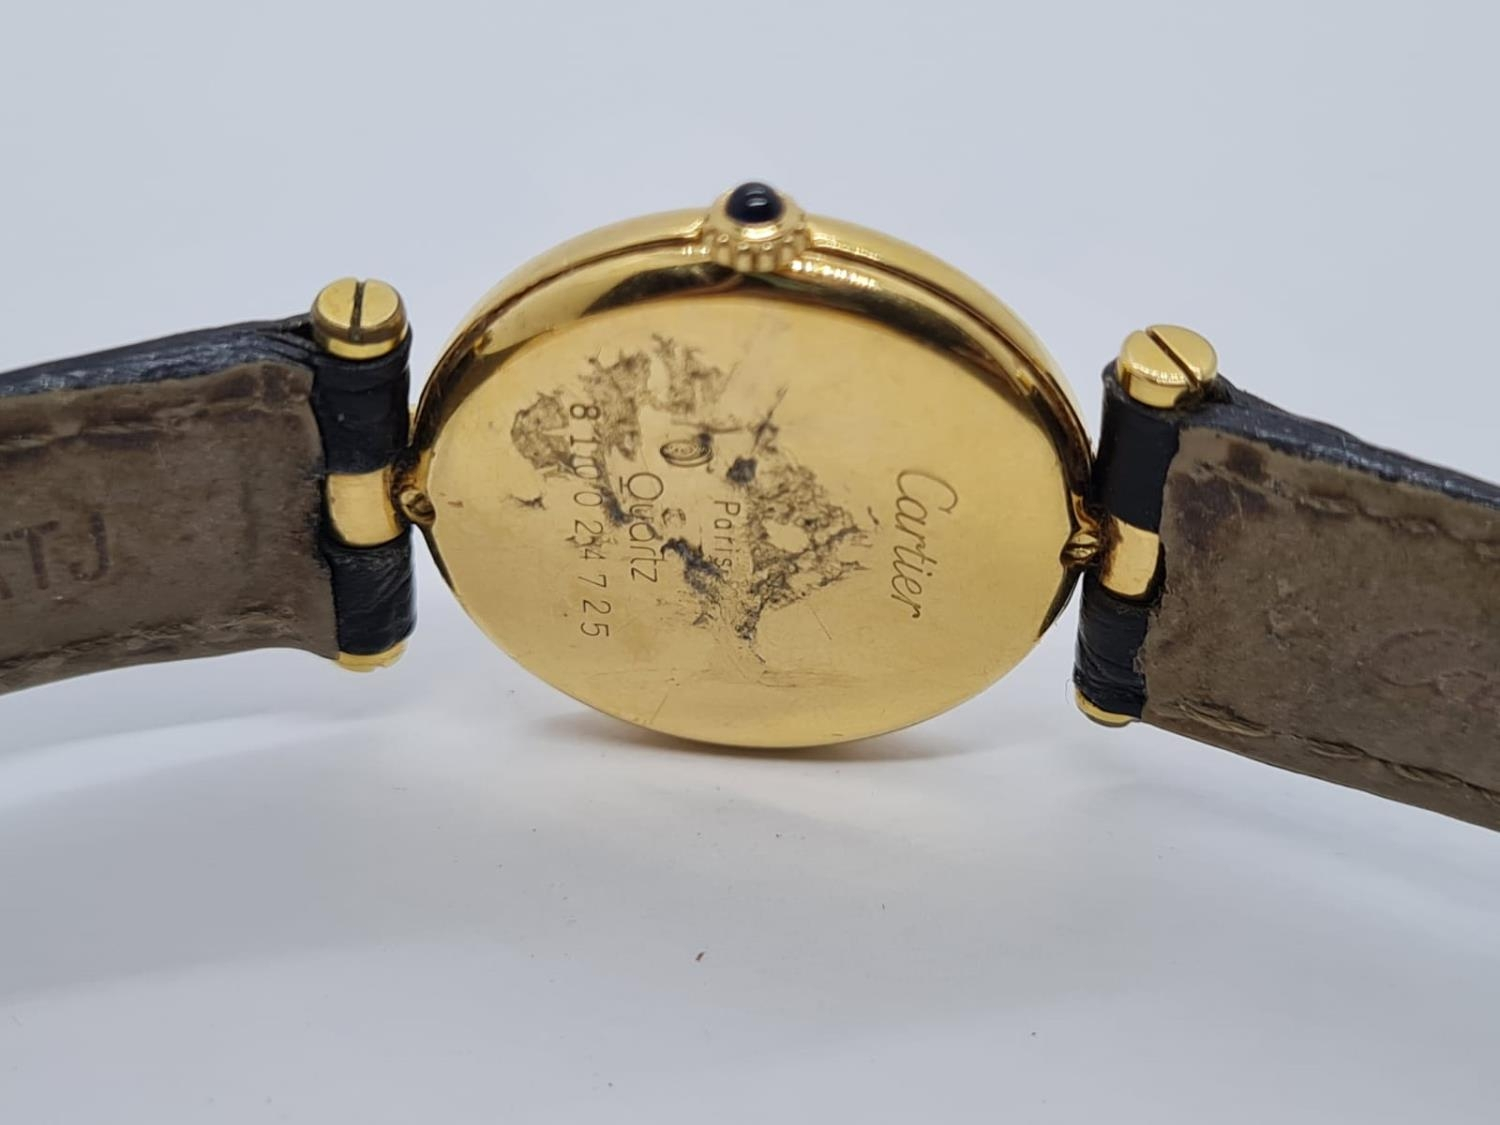 Vintage Cartier 18ct Gold Ladies quartz WATCH with round face and Roman Numerals and original - Image 4 of 4